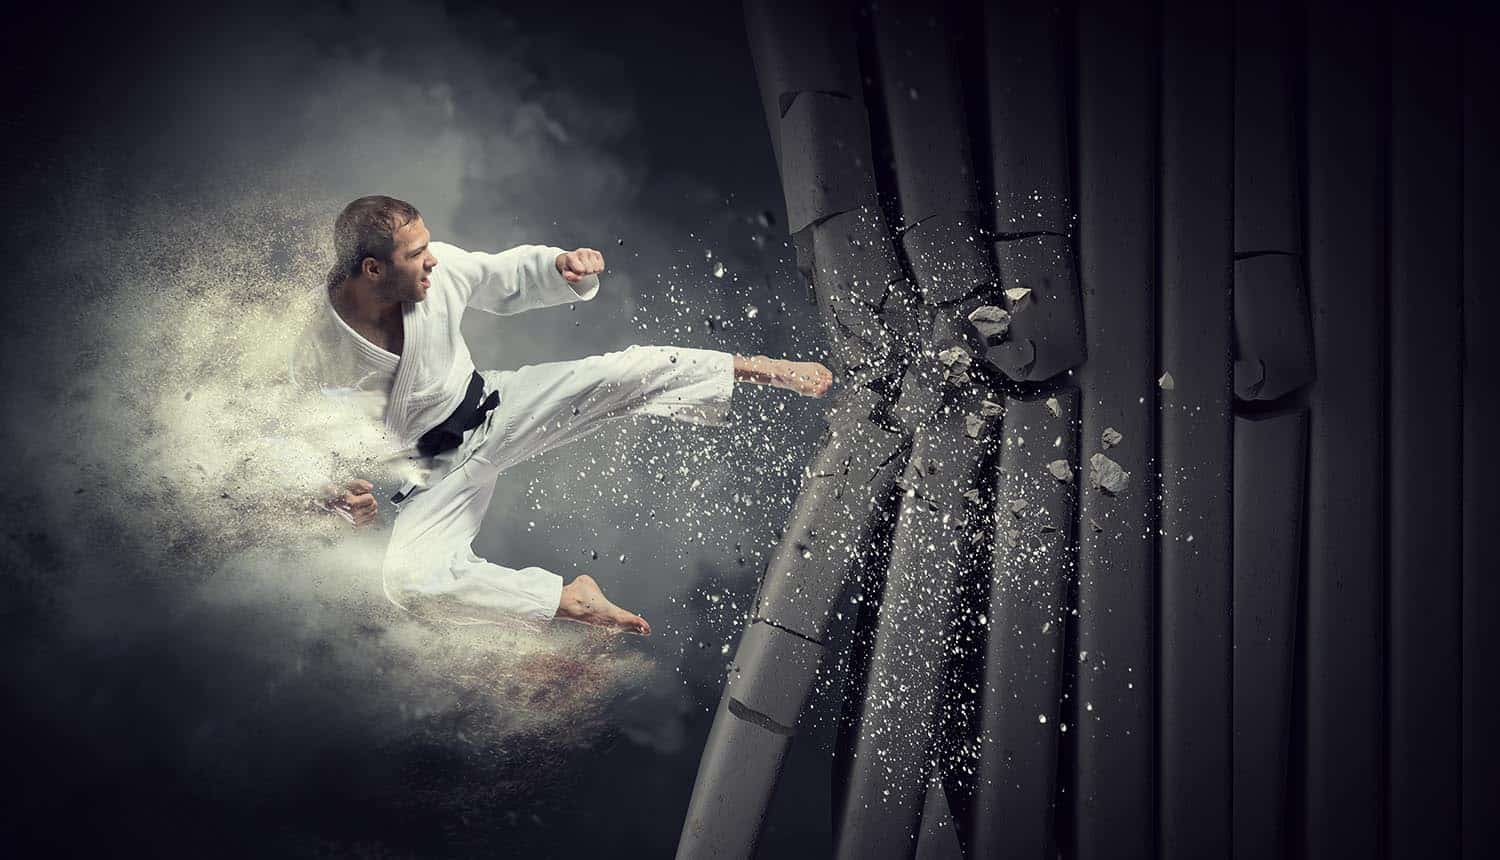 Karate man breaks wall showing Israel's cyber response using missile strike